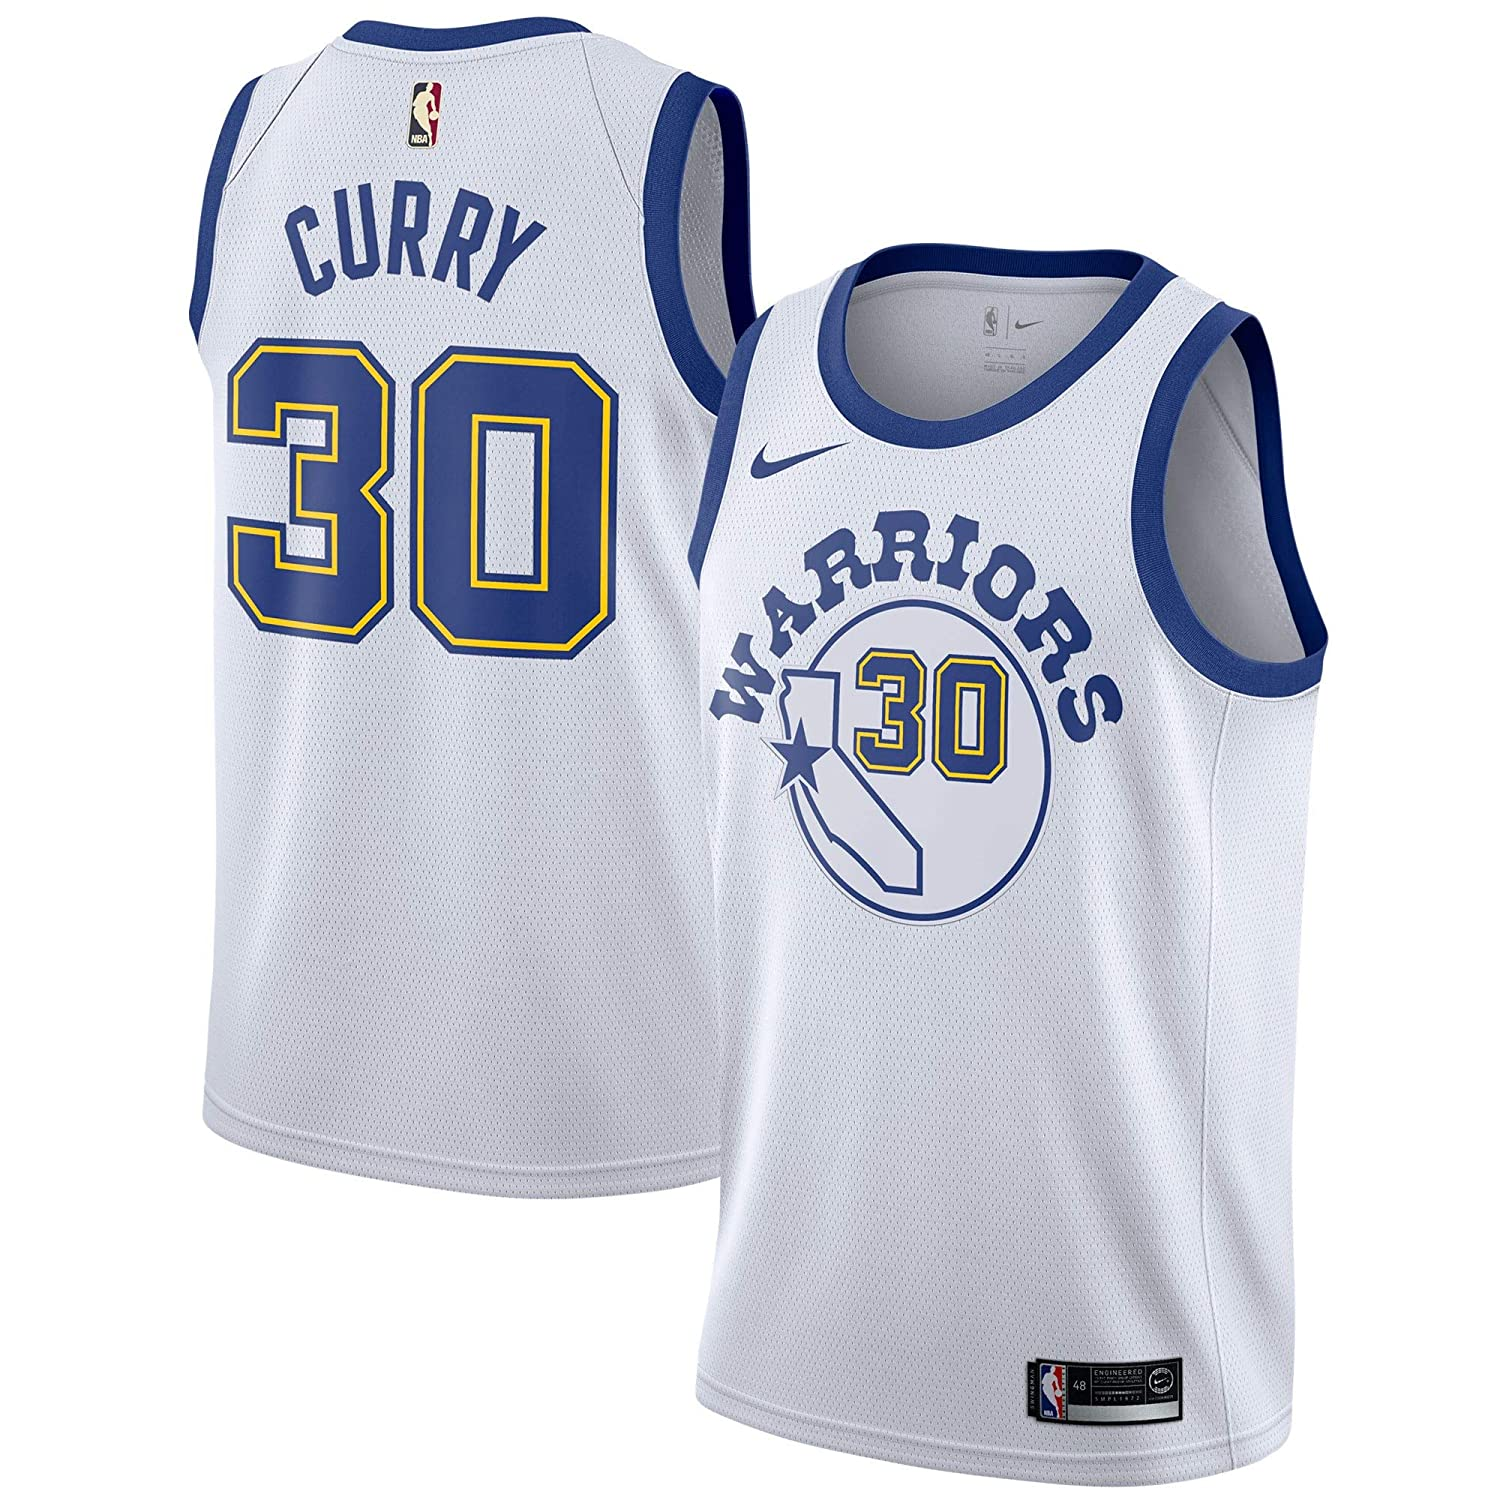 Amazon.com   Nike Stephen Curry Golden State Warriors Swingman Hardwood  Classics White Jersey - Men s 2XL (XX-Large)   Sports   Outdoors 0fd28bcb2